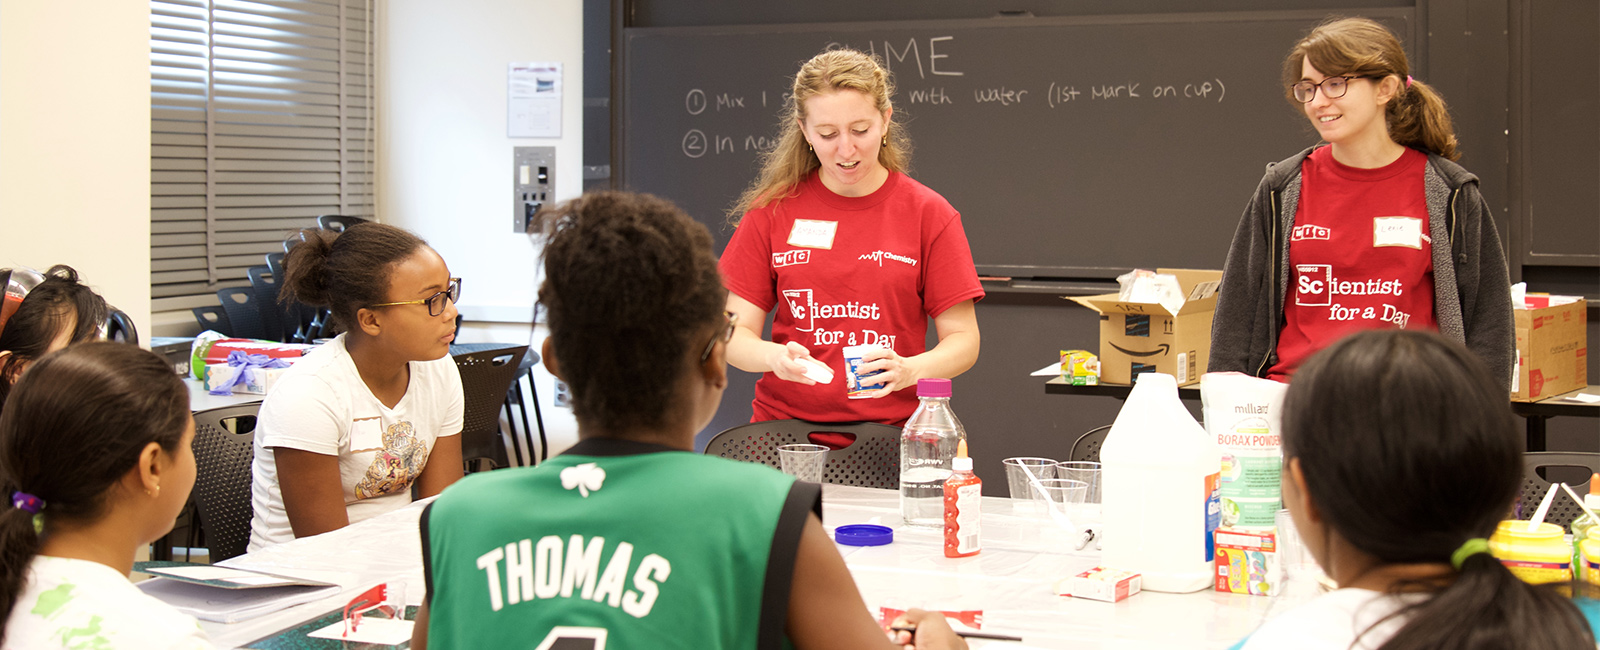 Two female graduate students lead a workshop of science demonstrations for middle school girls.